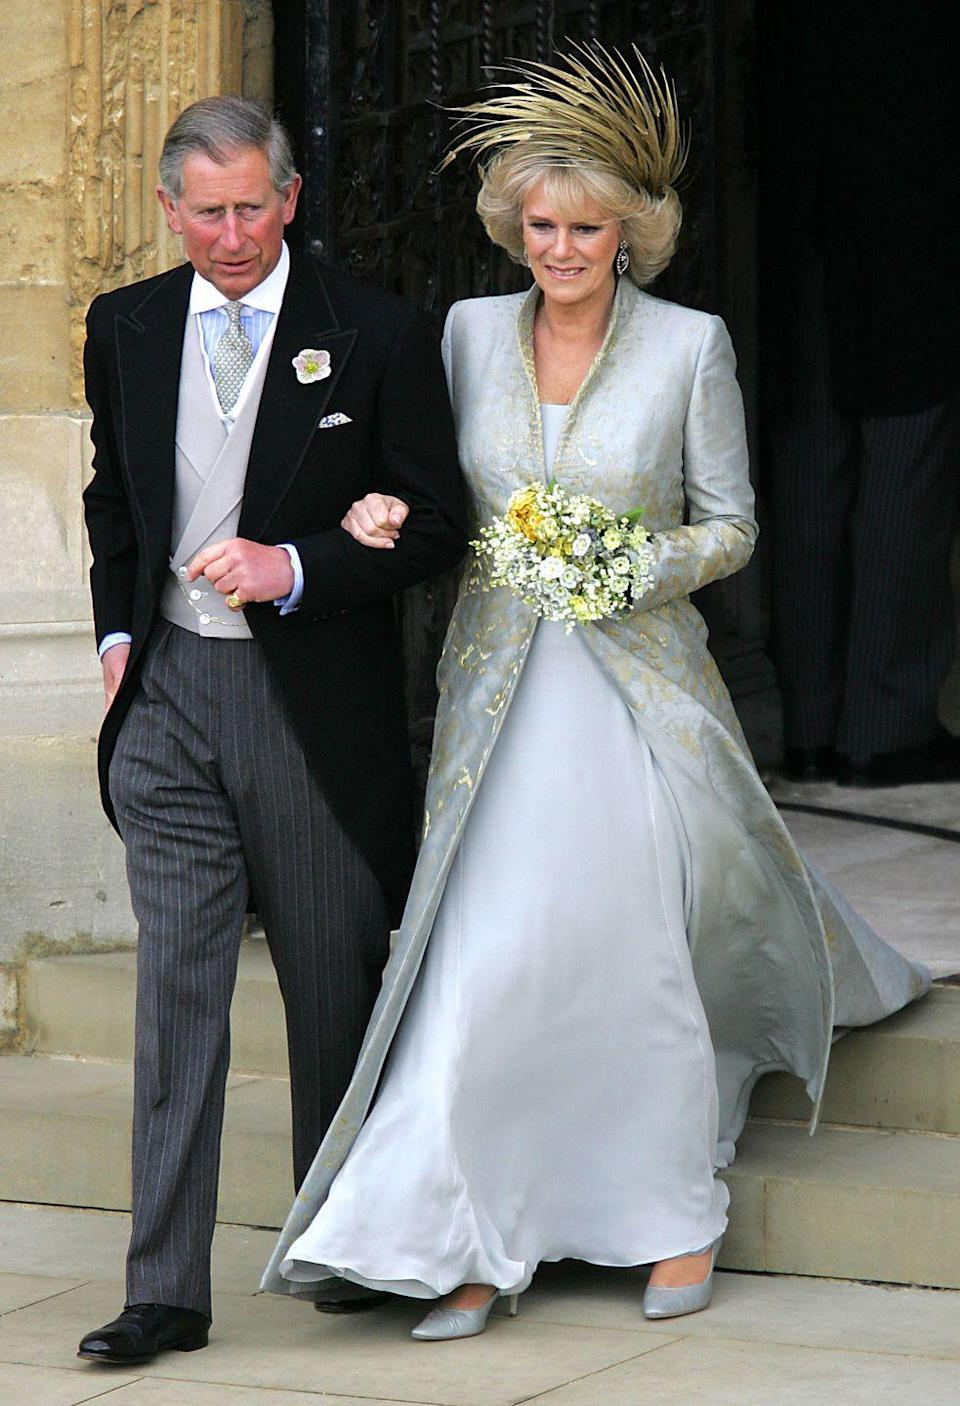 "<p><a href=""https://www.townandcountrymag.com/style/fashion-trends/g14510433/camilla-parker-bowles-fashion-style/"" rel=""nofollow noopener"" target=""_blank"" data-ylk=""slk:Camilla, Duchess Of Cornwall"" class=""link rapid-noclick-resp"">Camilla, Duchess Of Cornwall</a> married Prince Charles of Wales on April 9, 2005 at <span class=""redactor-unlink"">St. George's Chapel</span> at Windsor Guildhall. Camilla wore a soft blue chiffon dress with a sleek blue and gold damask coat. The collar of the coat was embellished with gold embroidery.</p>"